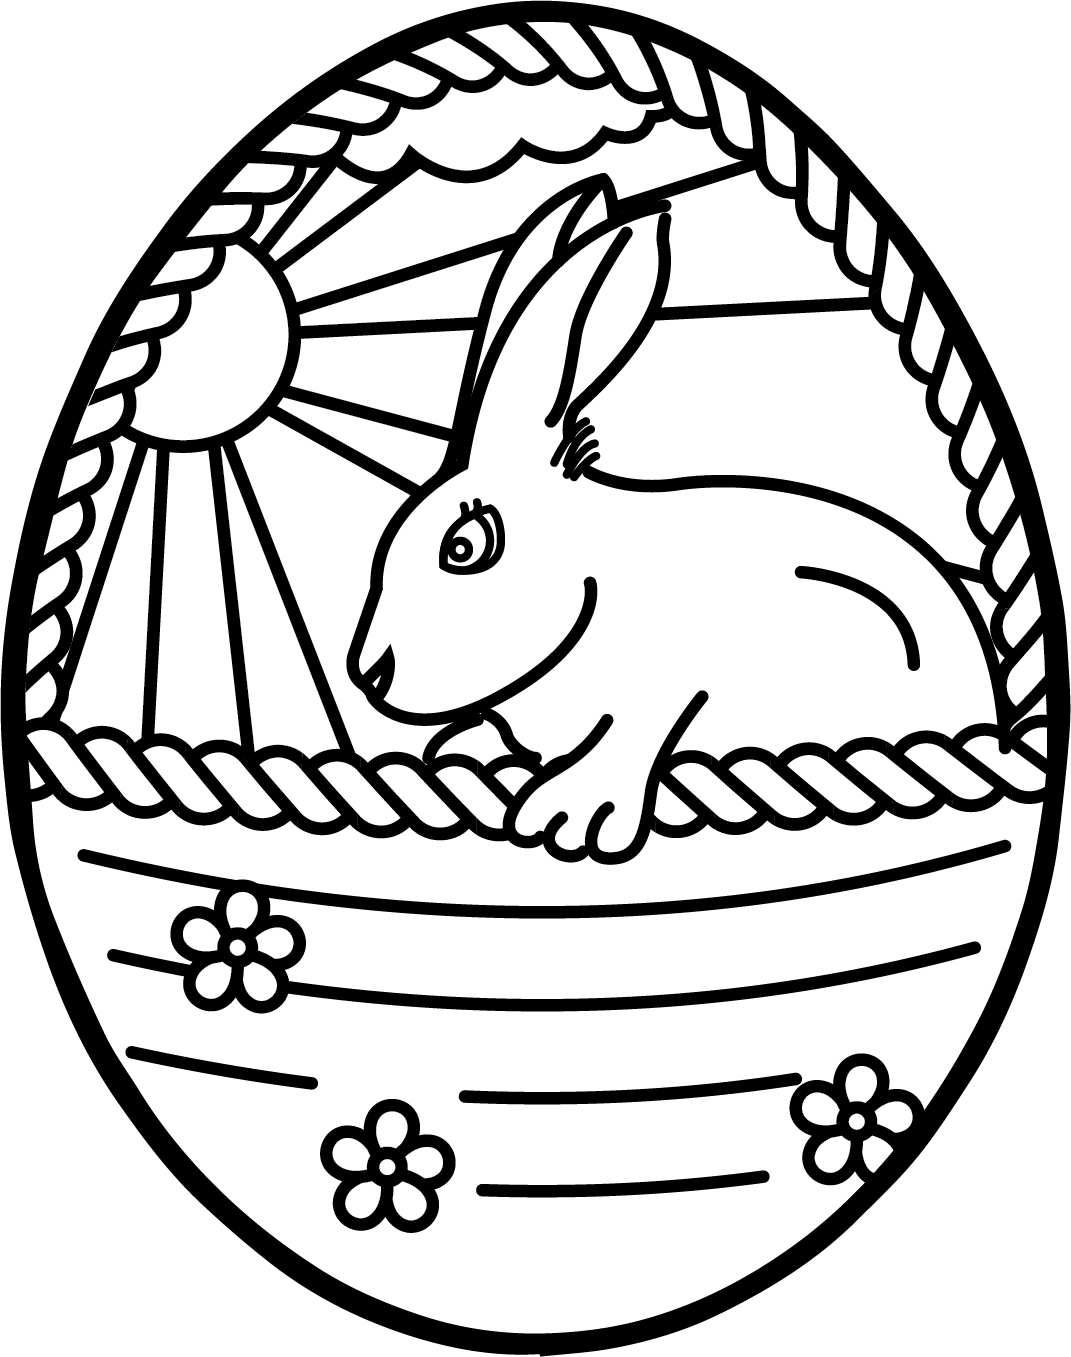 printable easter egg coloring pages ready for an easter egg art hunt download these printable easter printable pages egg coloring